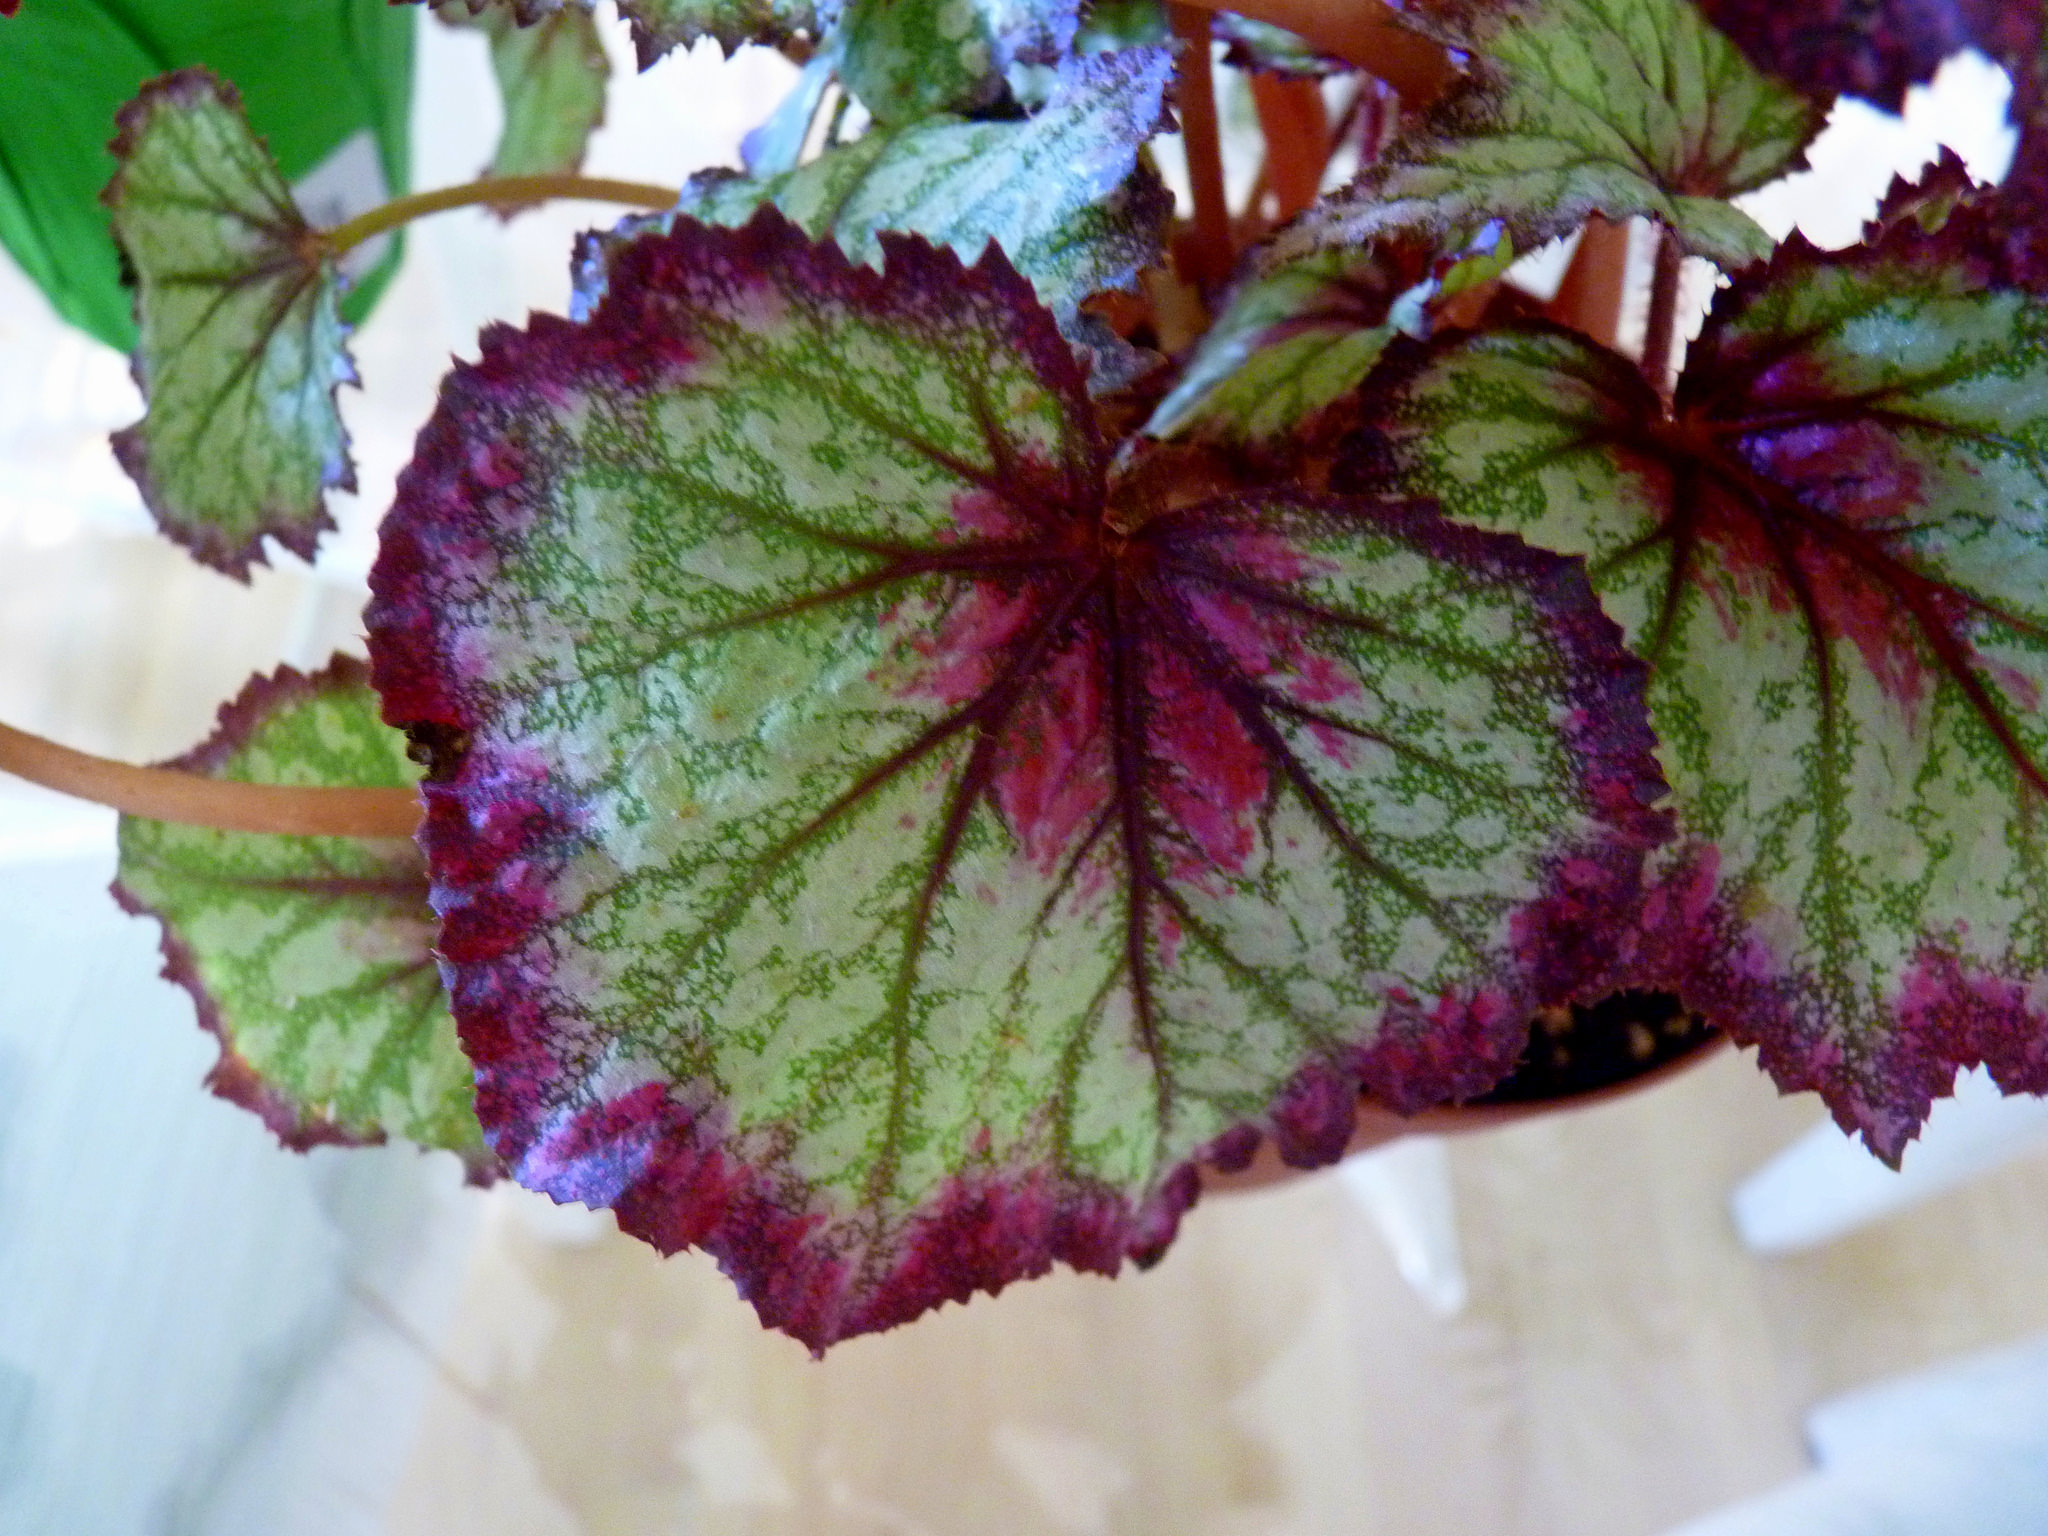 A rex begonia can be a stunning hanging plant; photo courtesy of Flickr cc/Howard Lifshitz